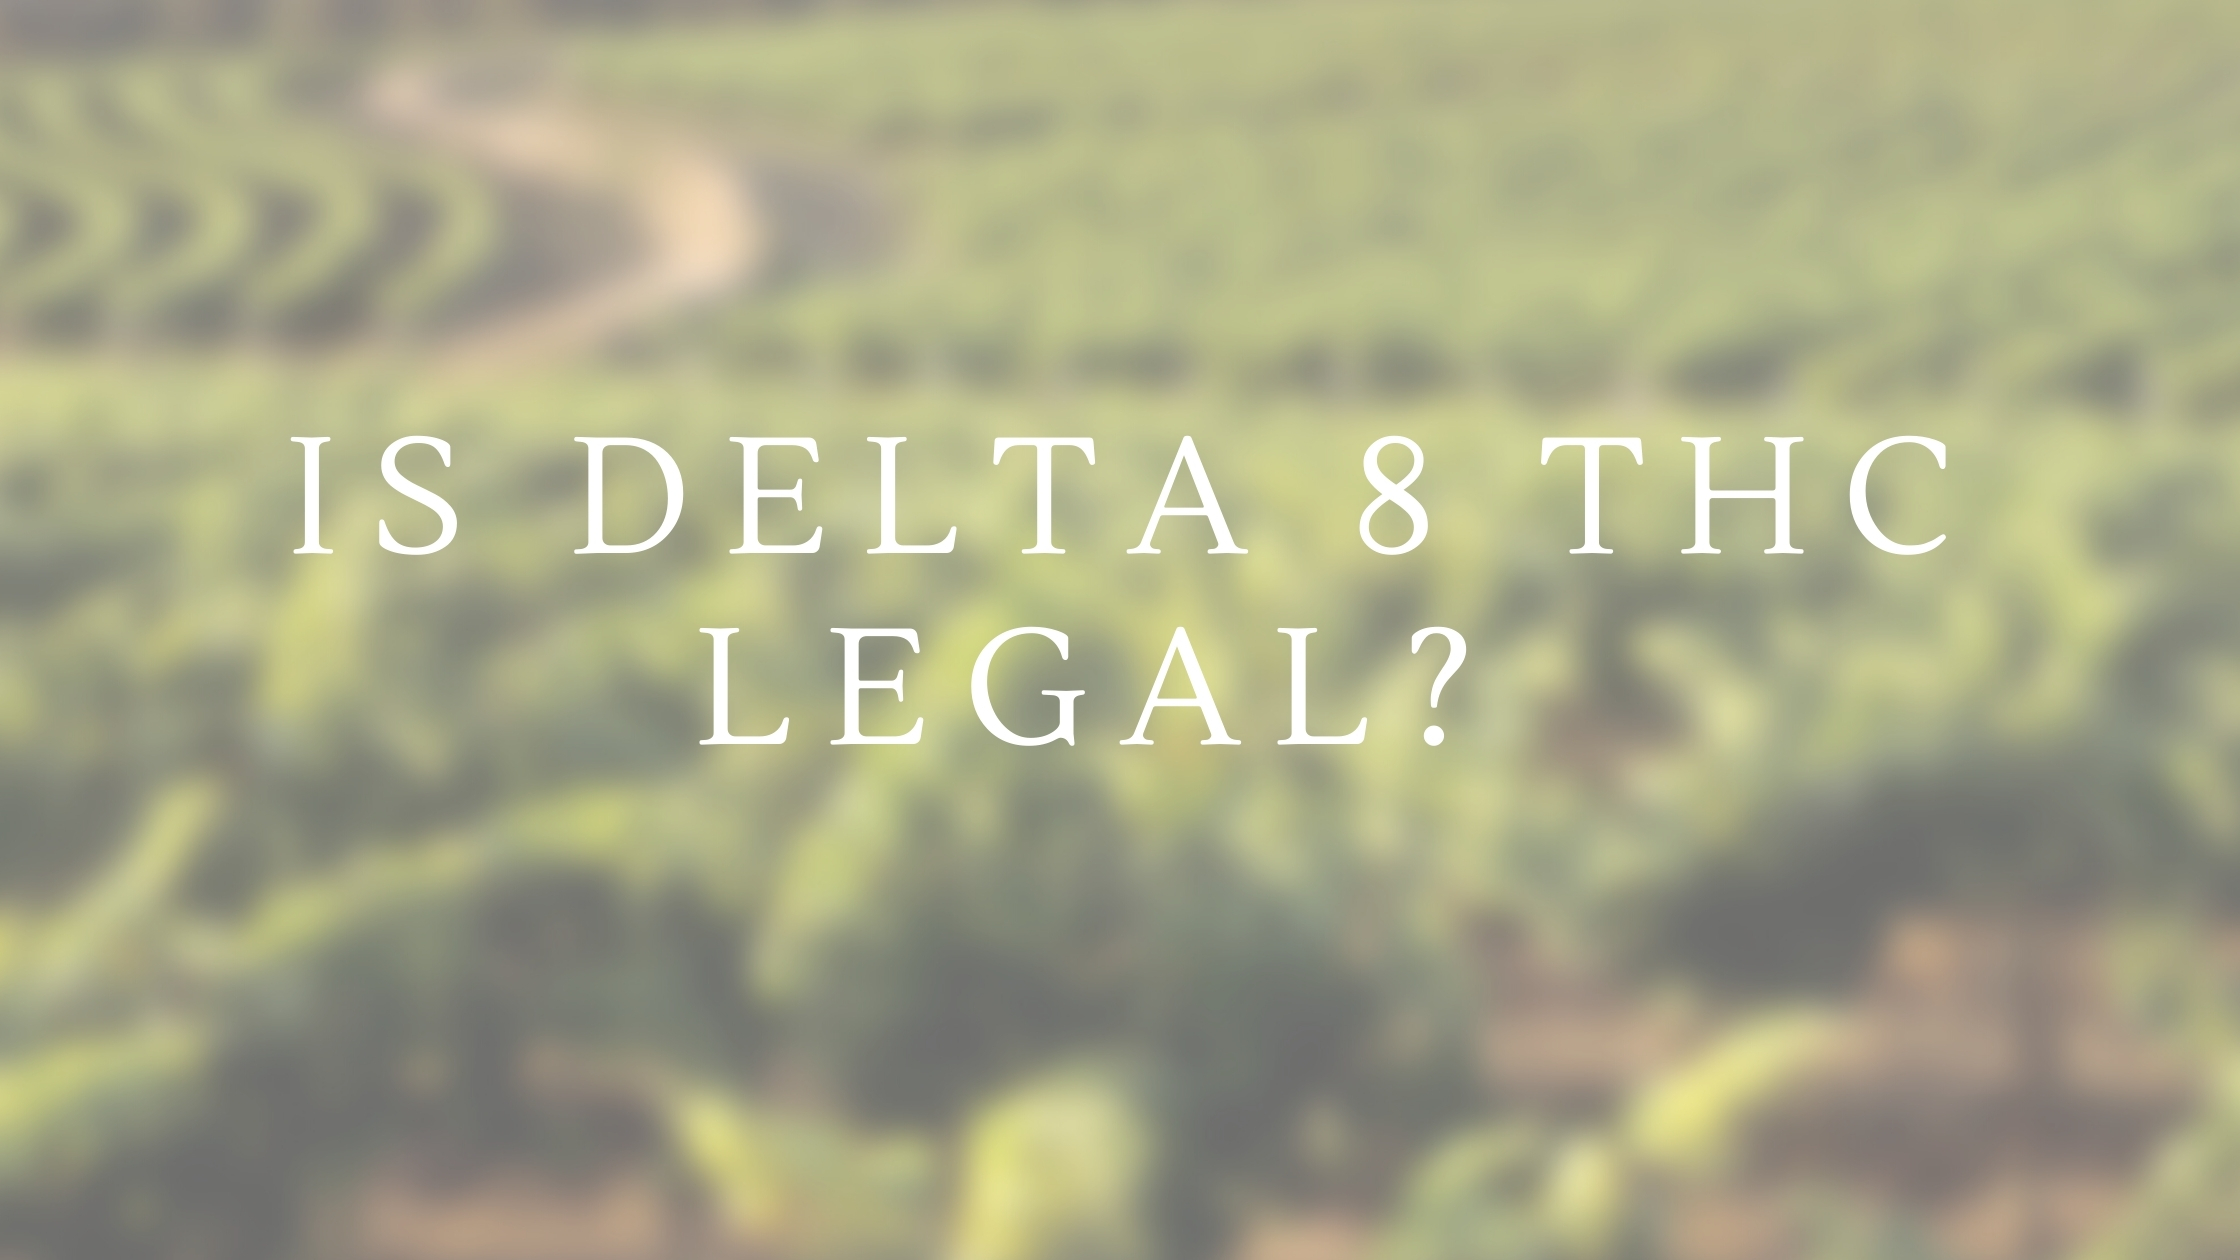 Is Delta 8 Thc Legal?